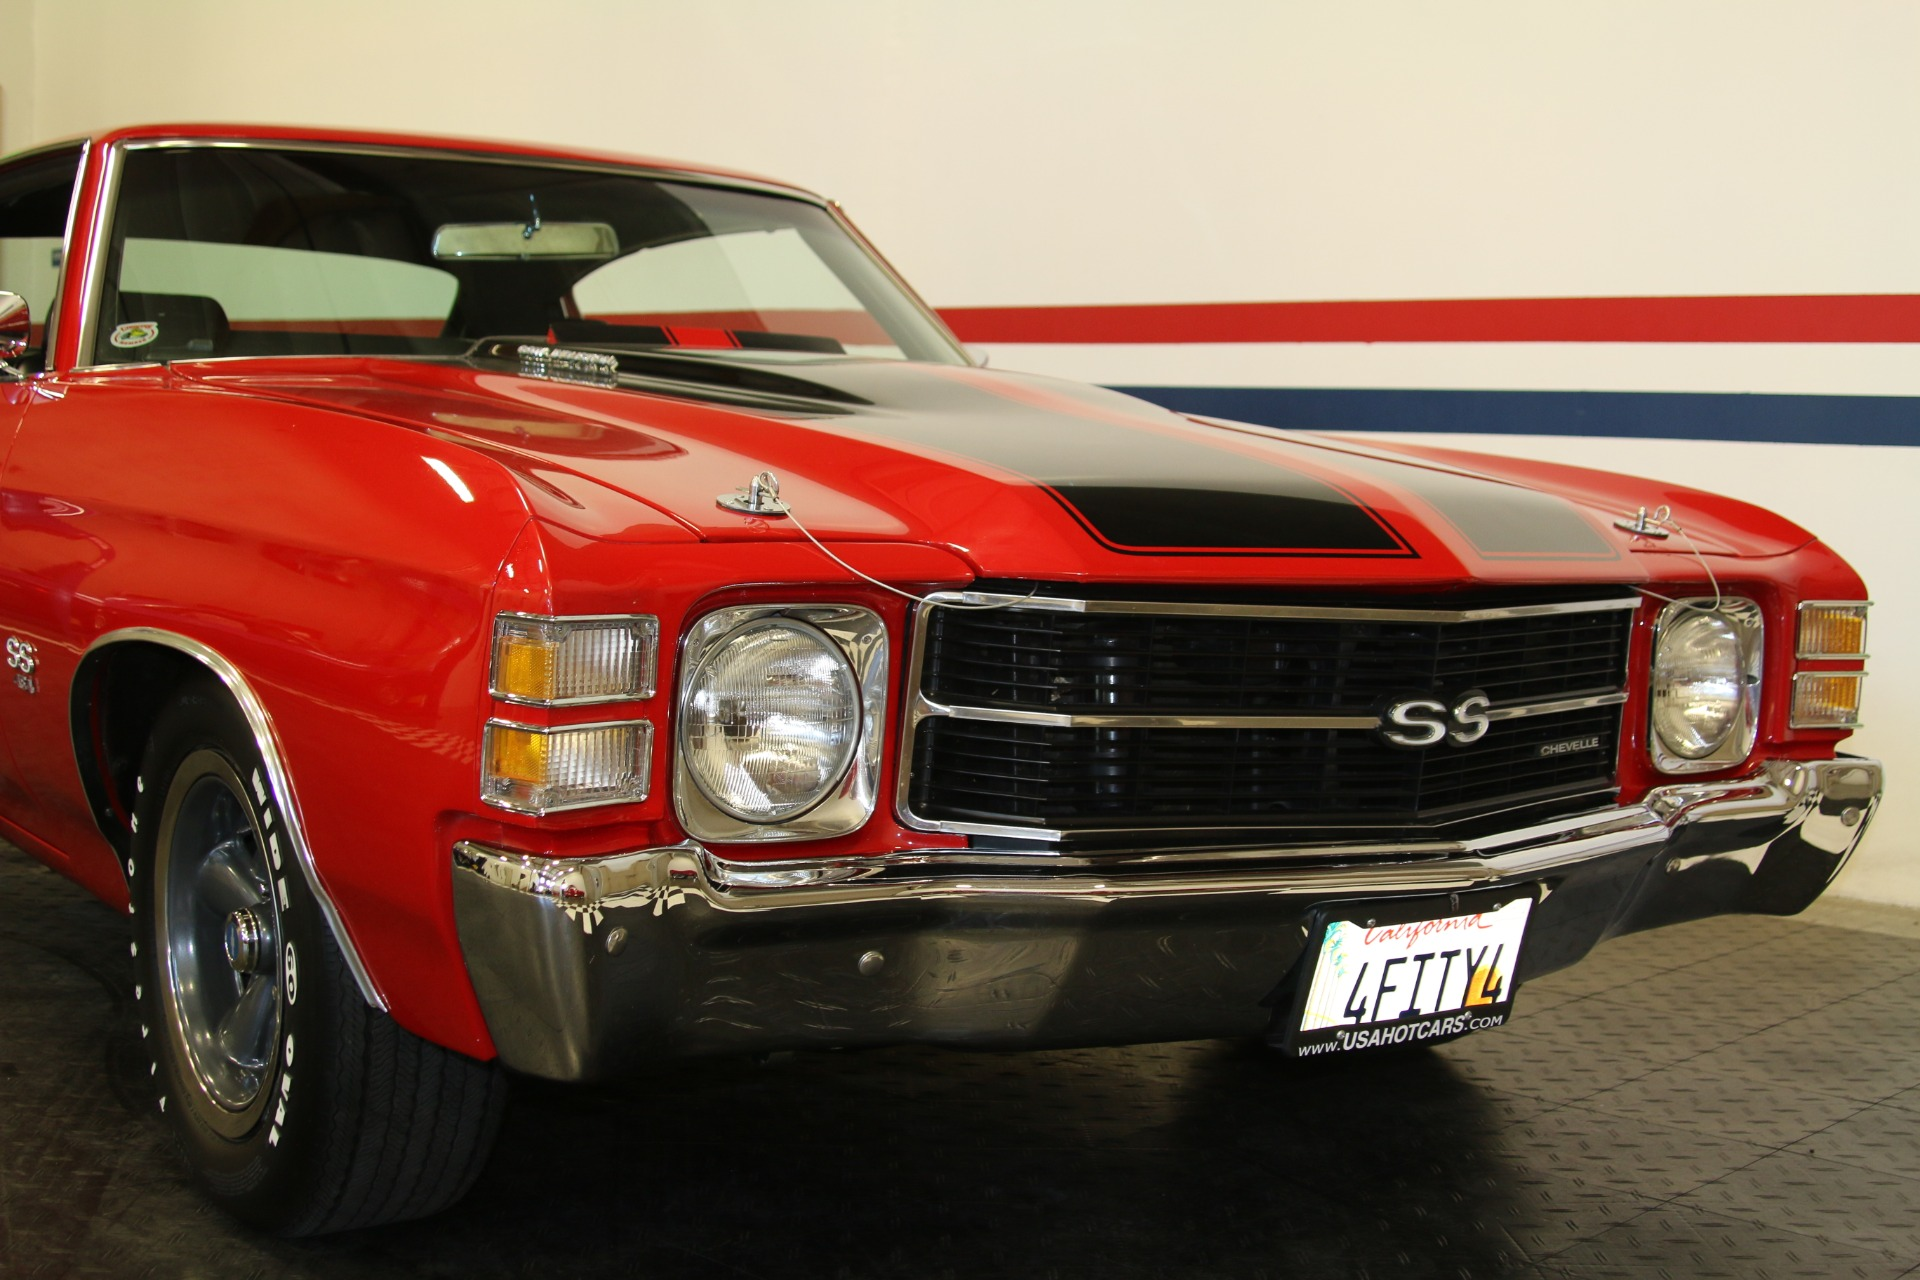 Used-1971-Chevrolet-Chevelle-Super-Sport